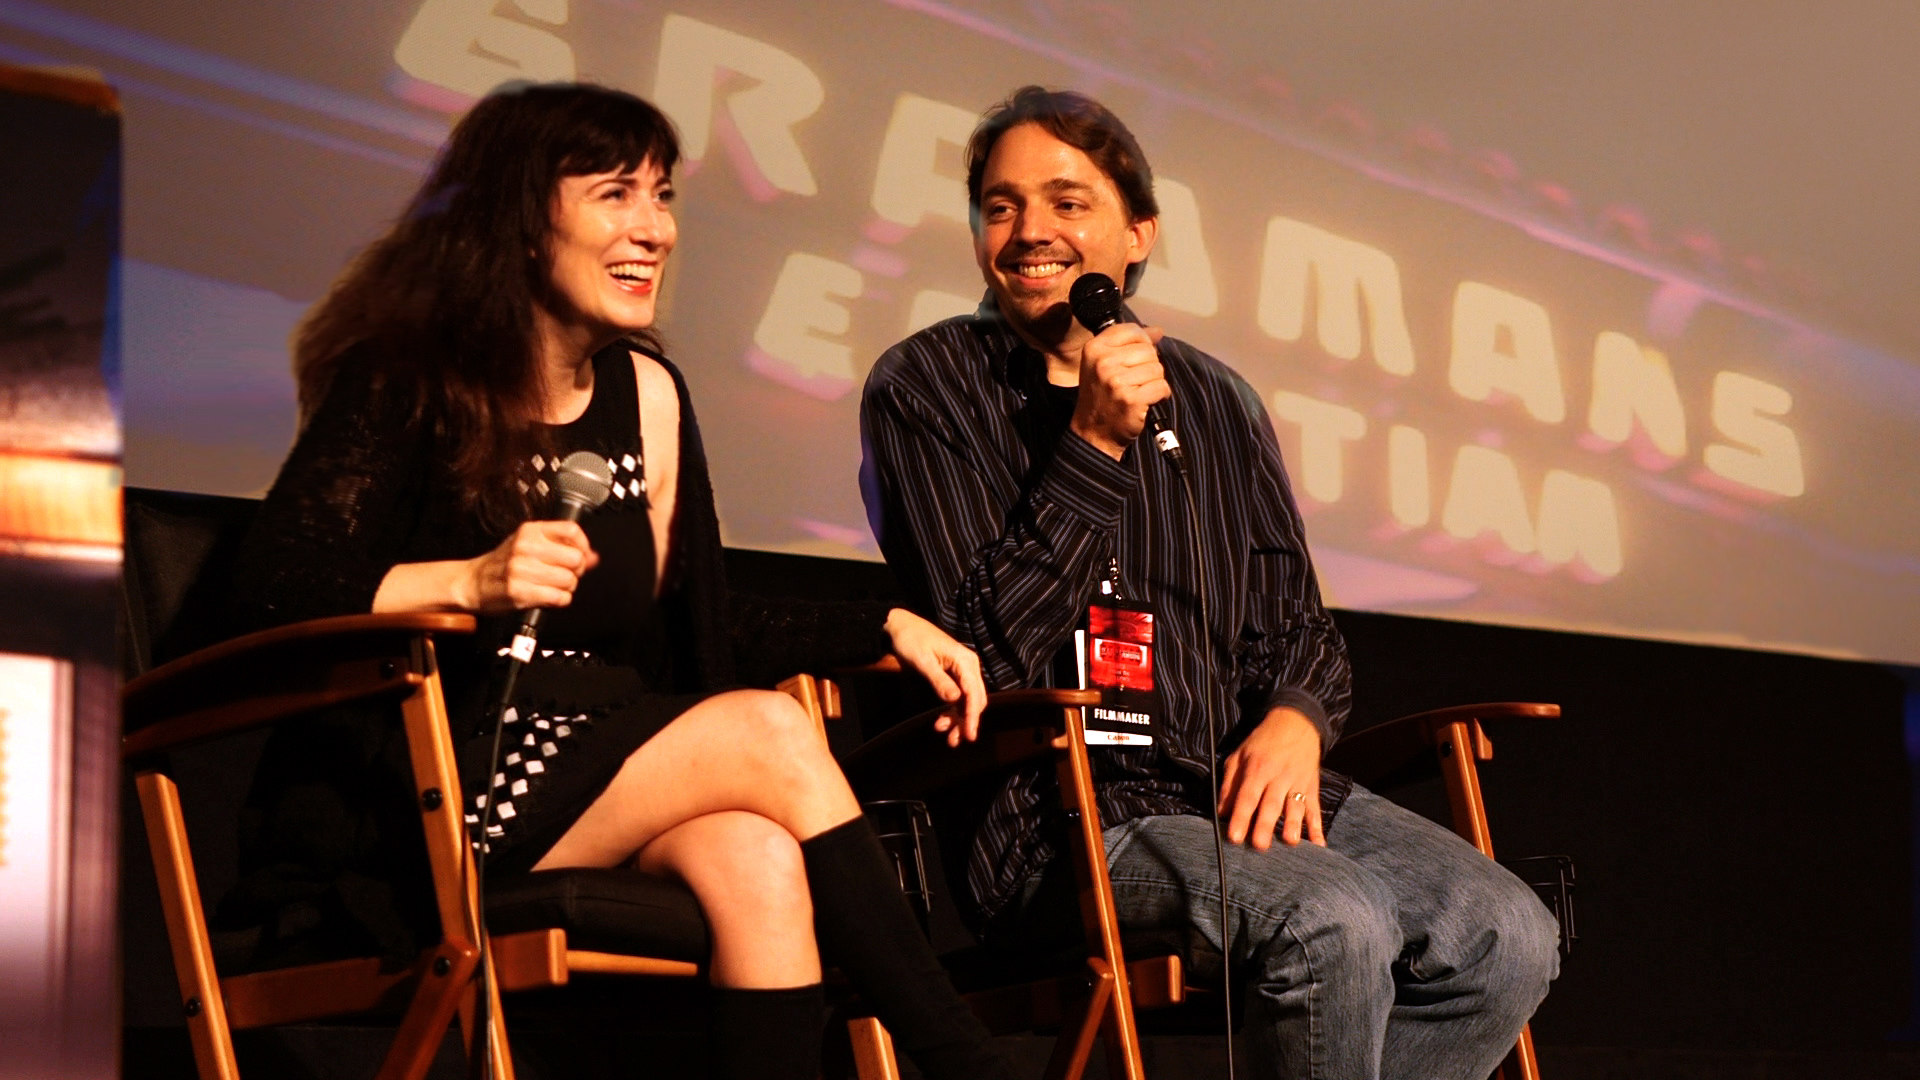 Director Cindy Baer and Cinematographer Matthew Irving of ODD BRODSKY at the Egyptian Theater, Hollywood.